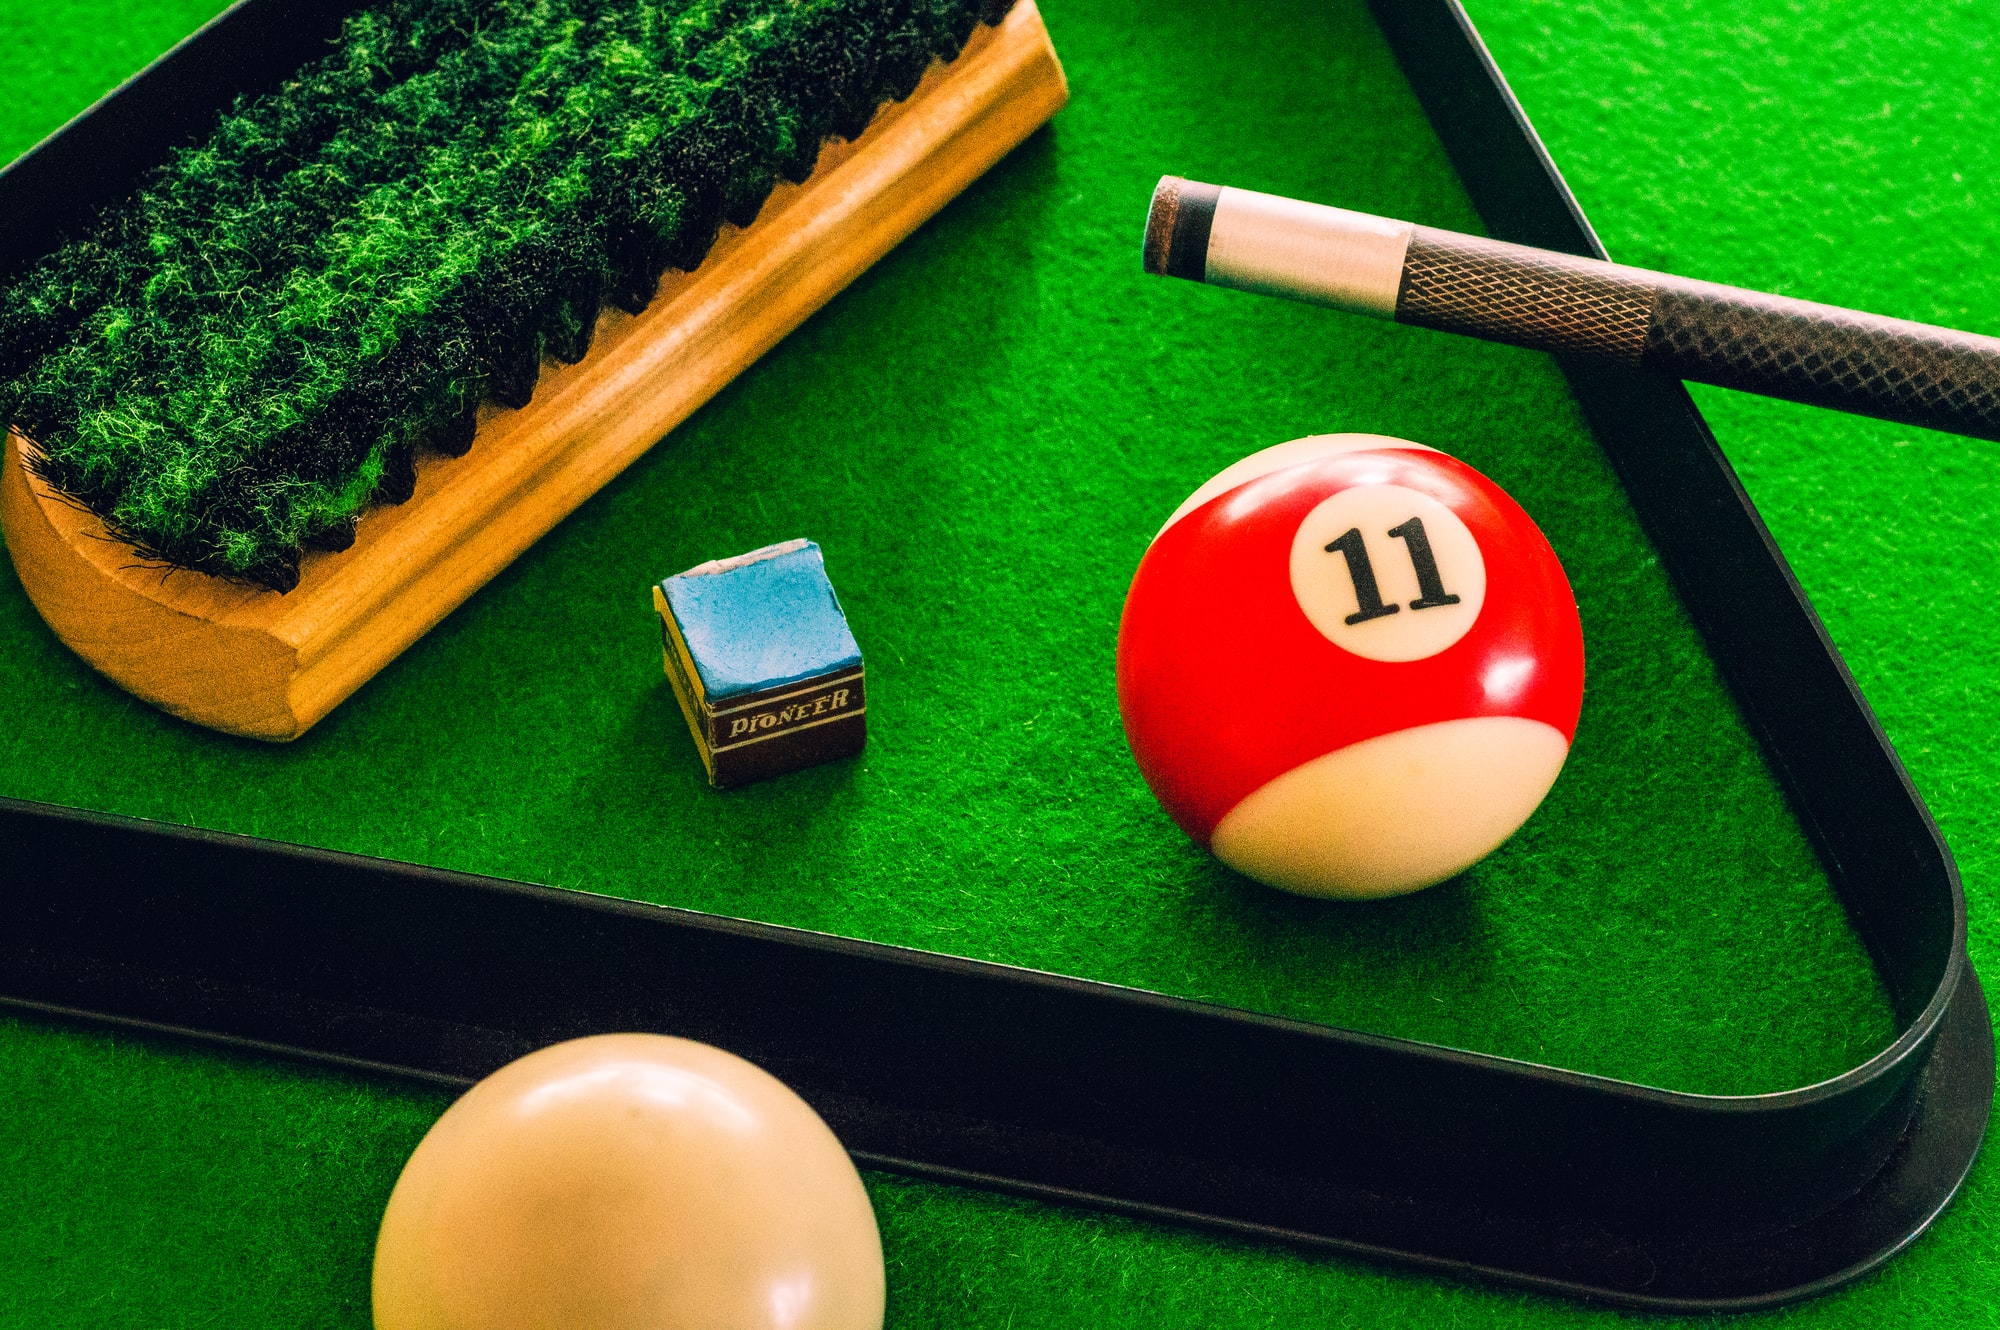 An assortment of billiards items in a single image.